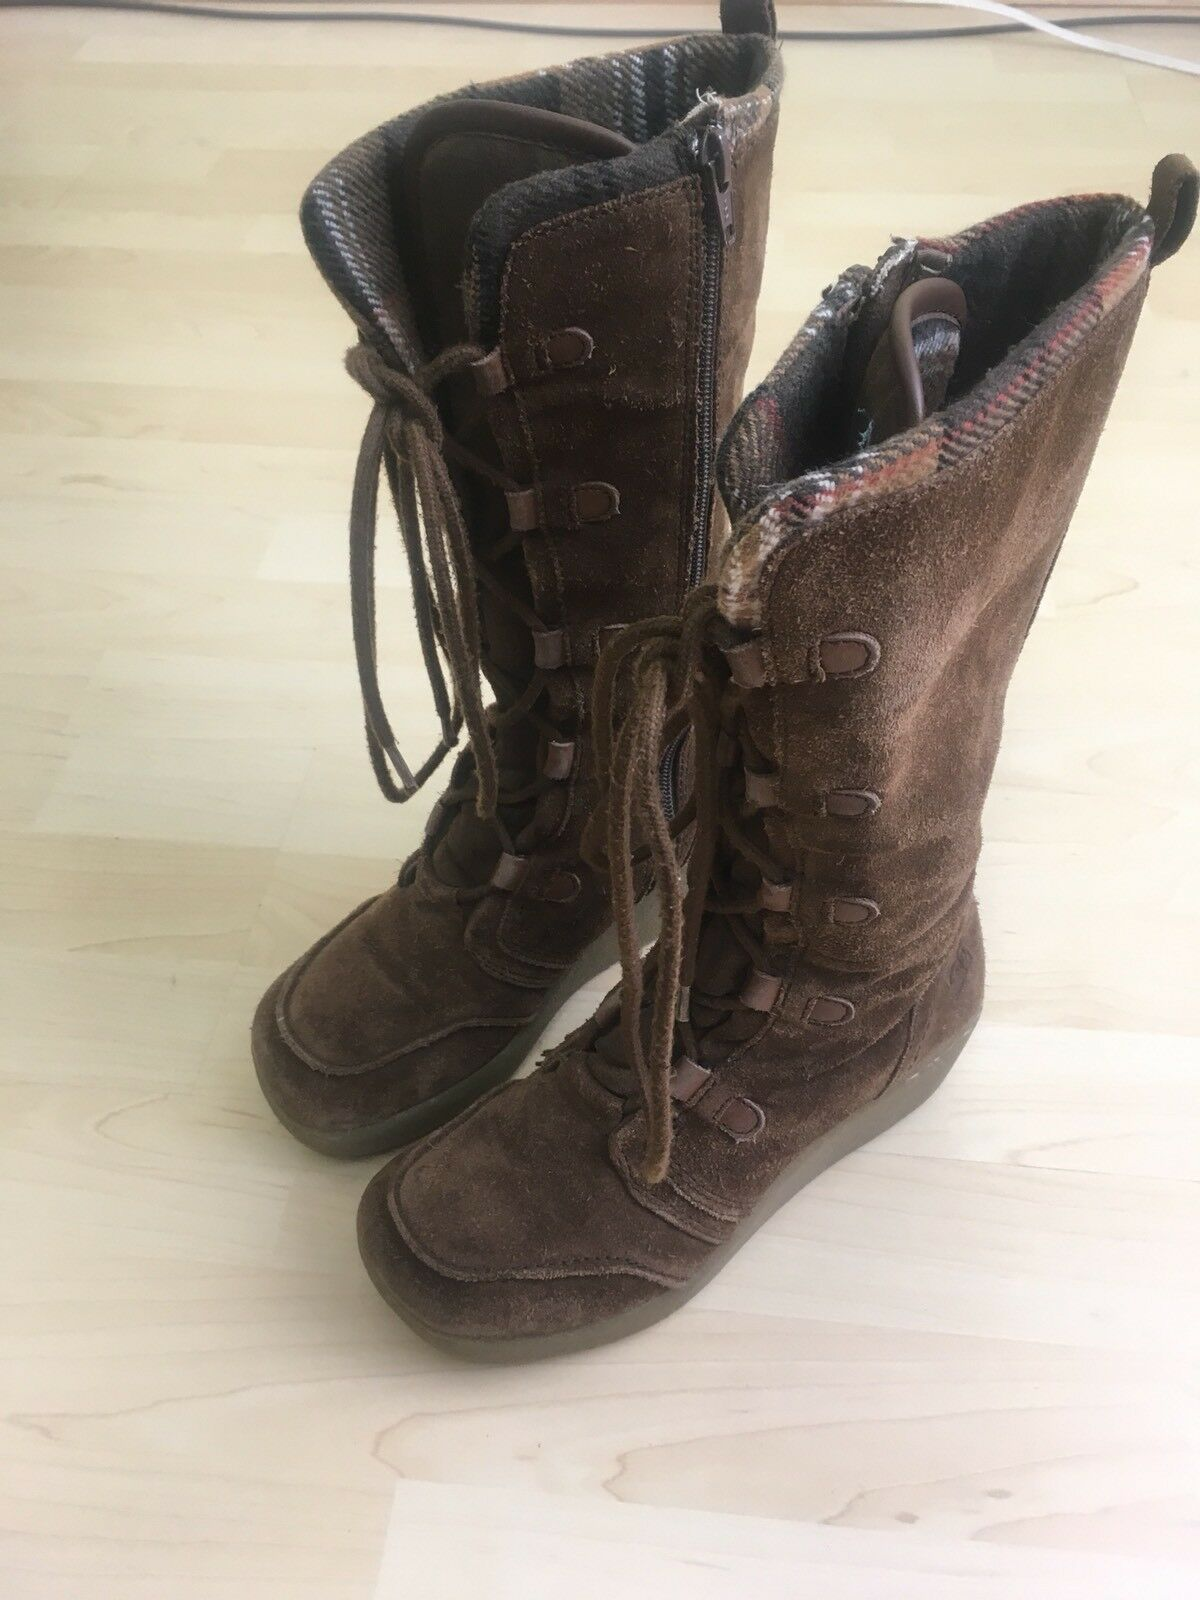 Roxy Women's Sz 6 Timber Boots Tall Brown Leather Side Zipper X457727PK